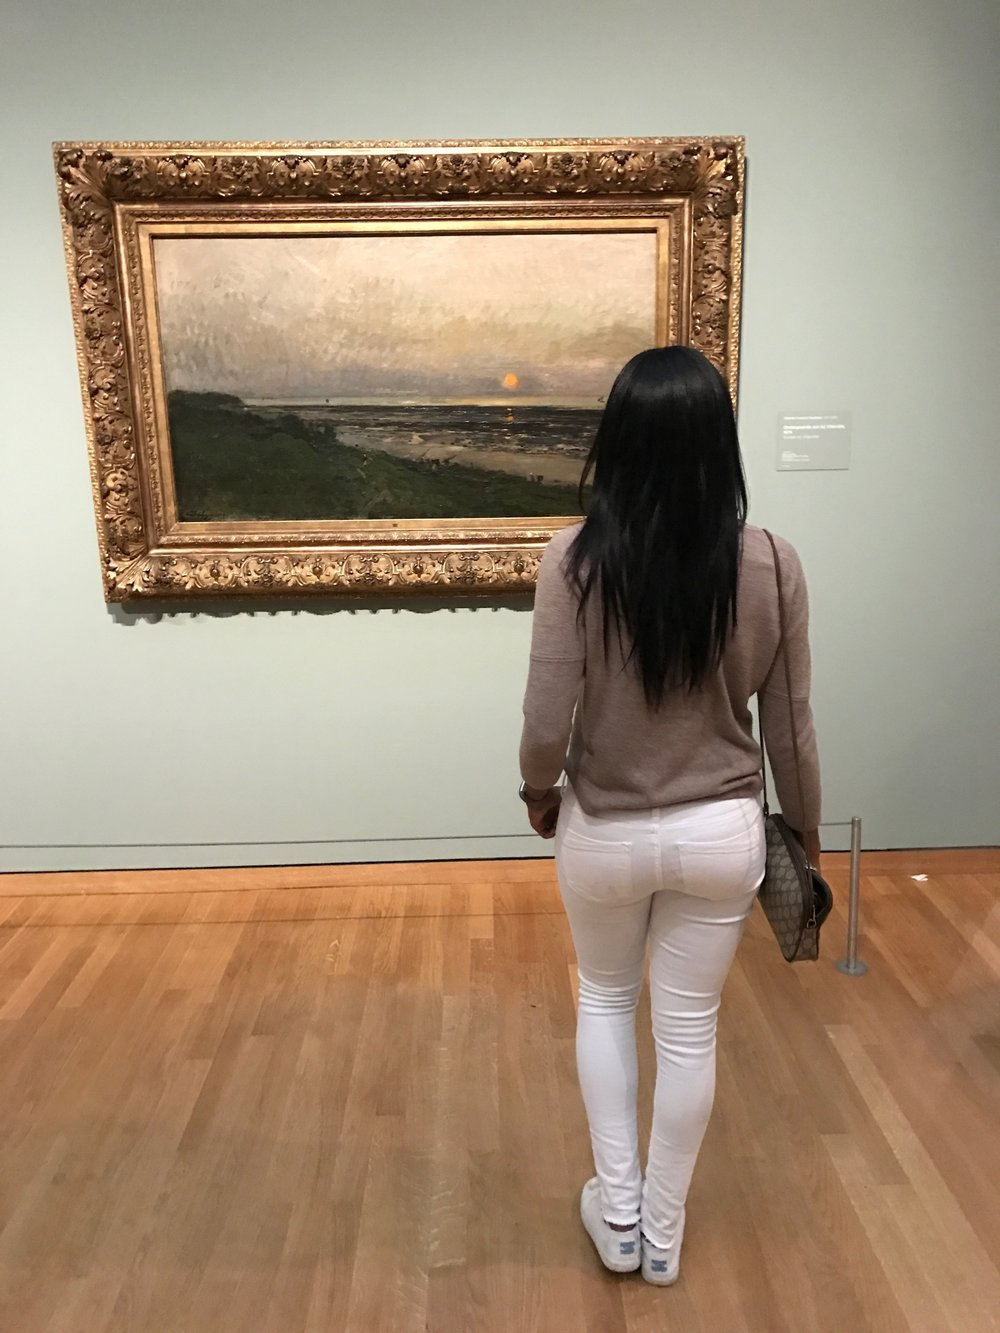 THE VAN GOGH MUSEUM WAS INCREDIBLE. THIS WAS ONE OF MY FAVORITE PIECES. WHEN YOU GET UP CLOSE, YOU CAN SEE THINGS THAT ARE NOT NOTICEABLE FROM AFAR!